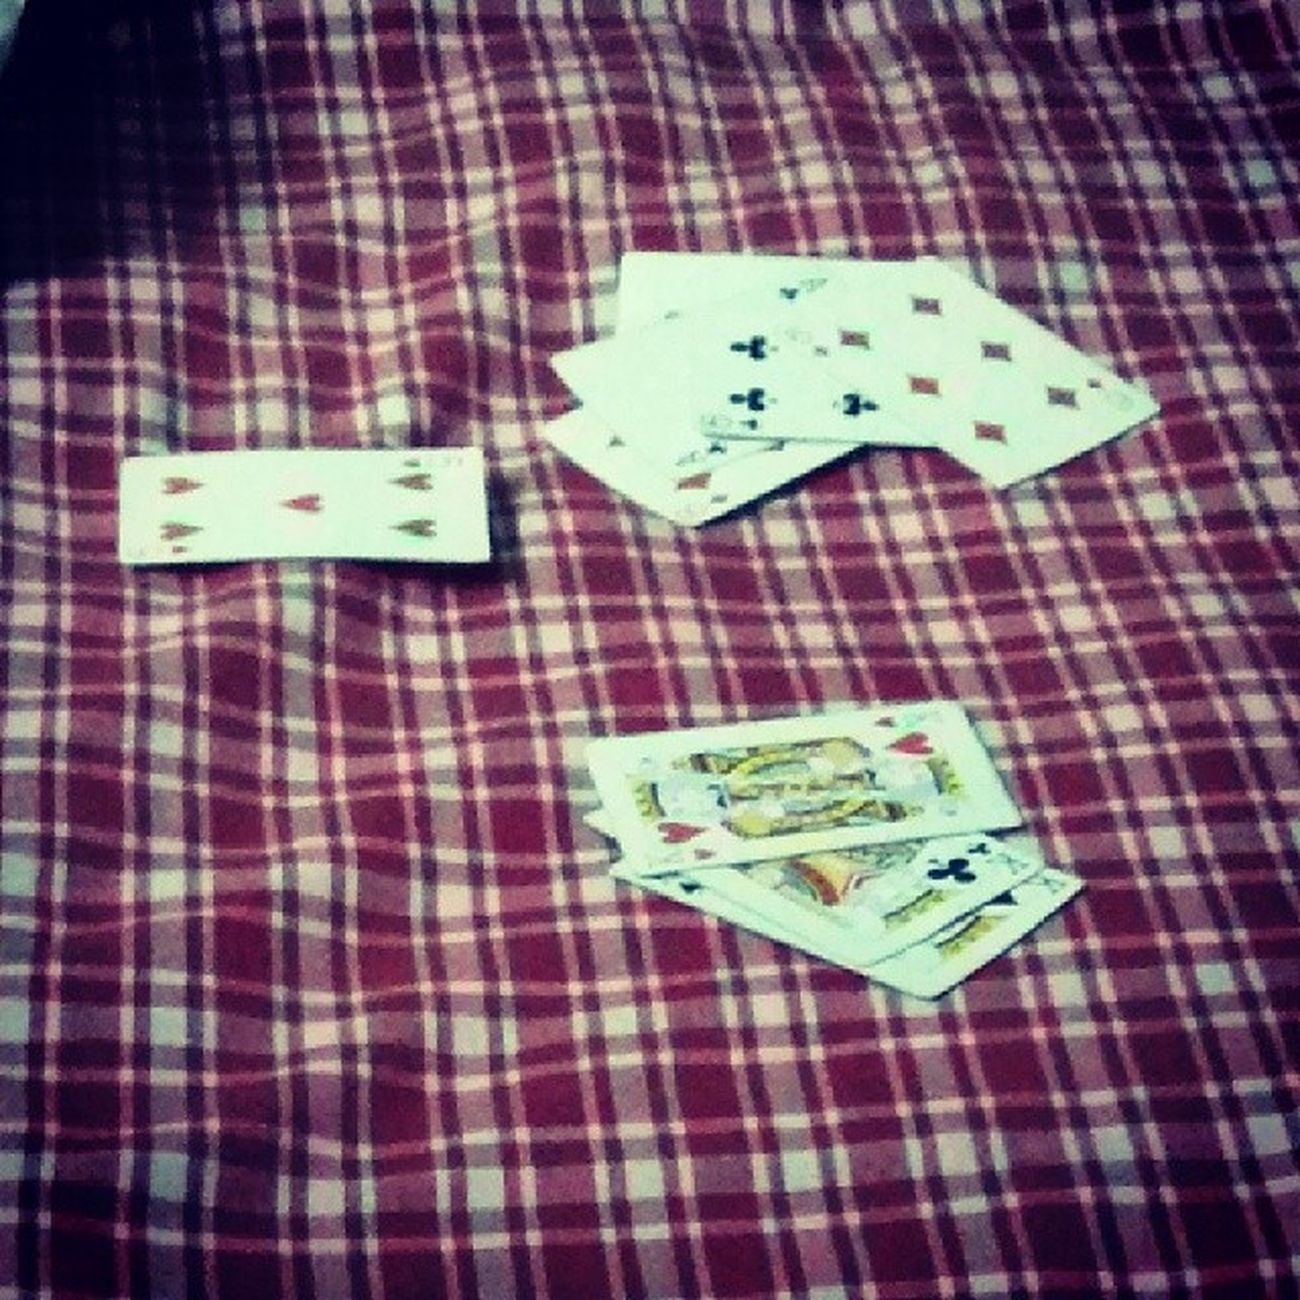 Game of cards Card Game Passtime Friends chandogarh instapic